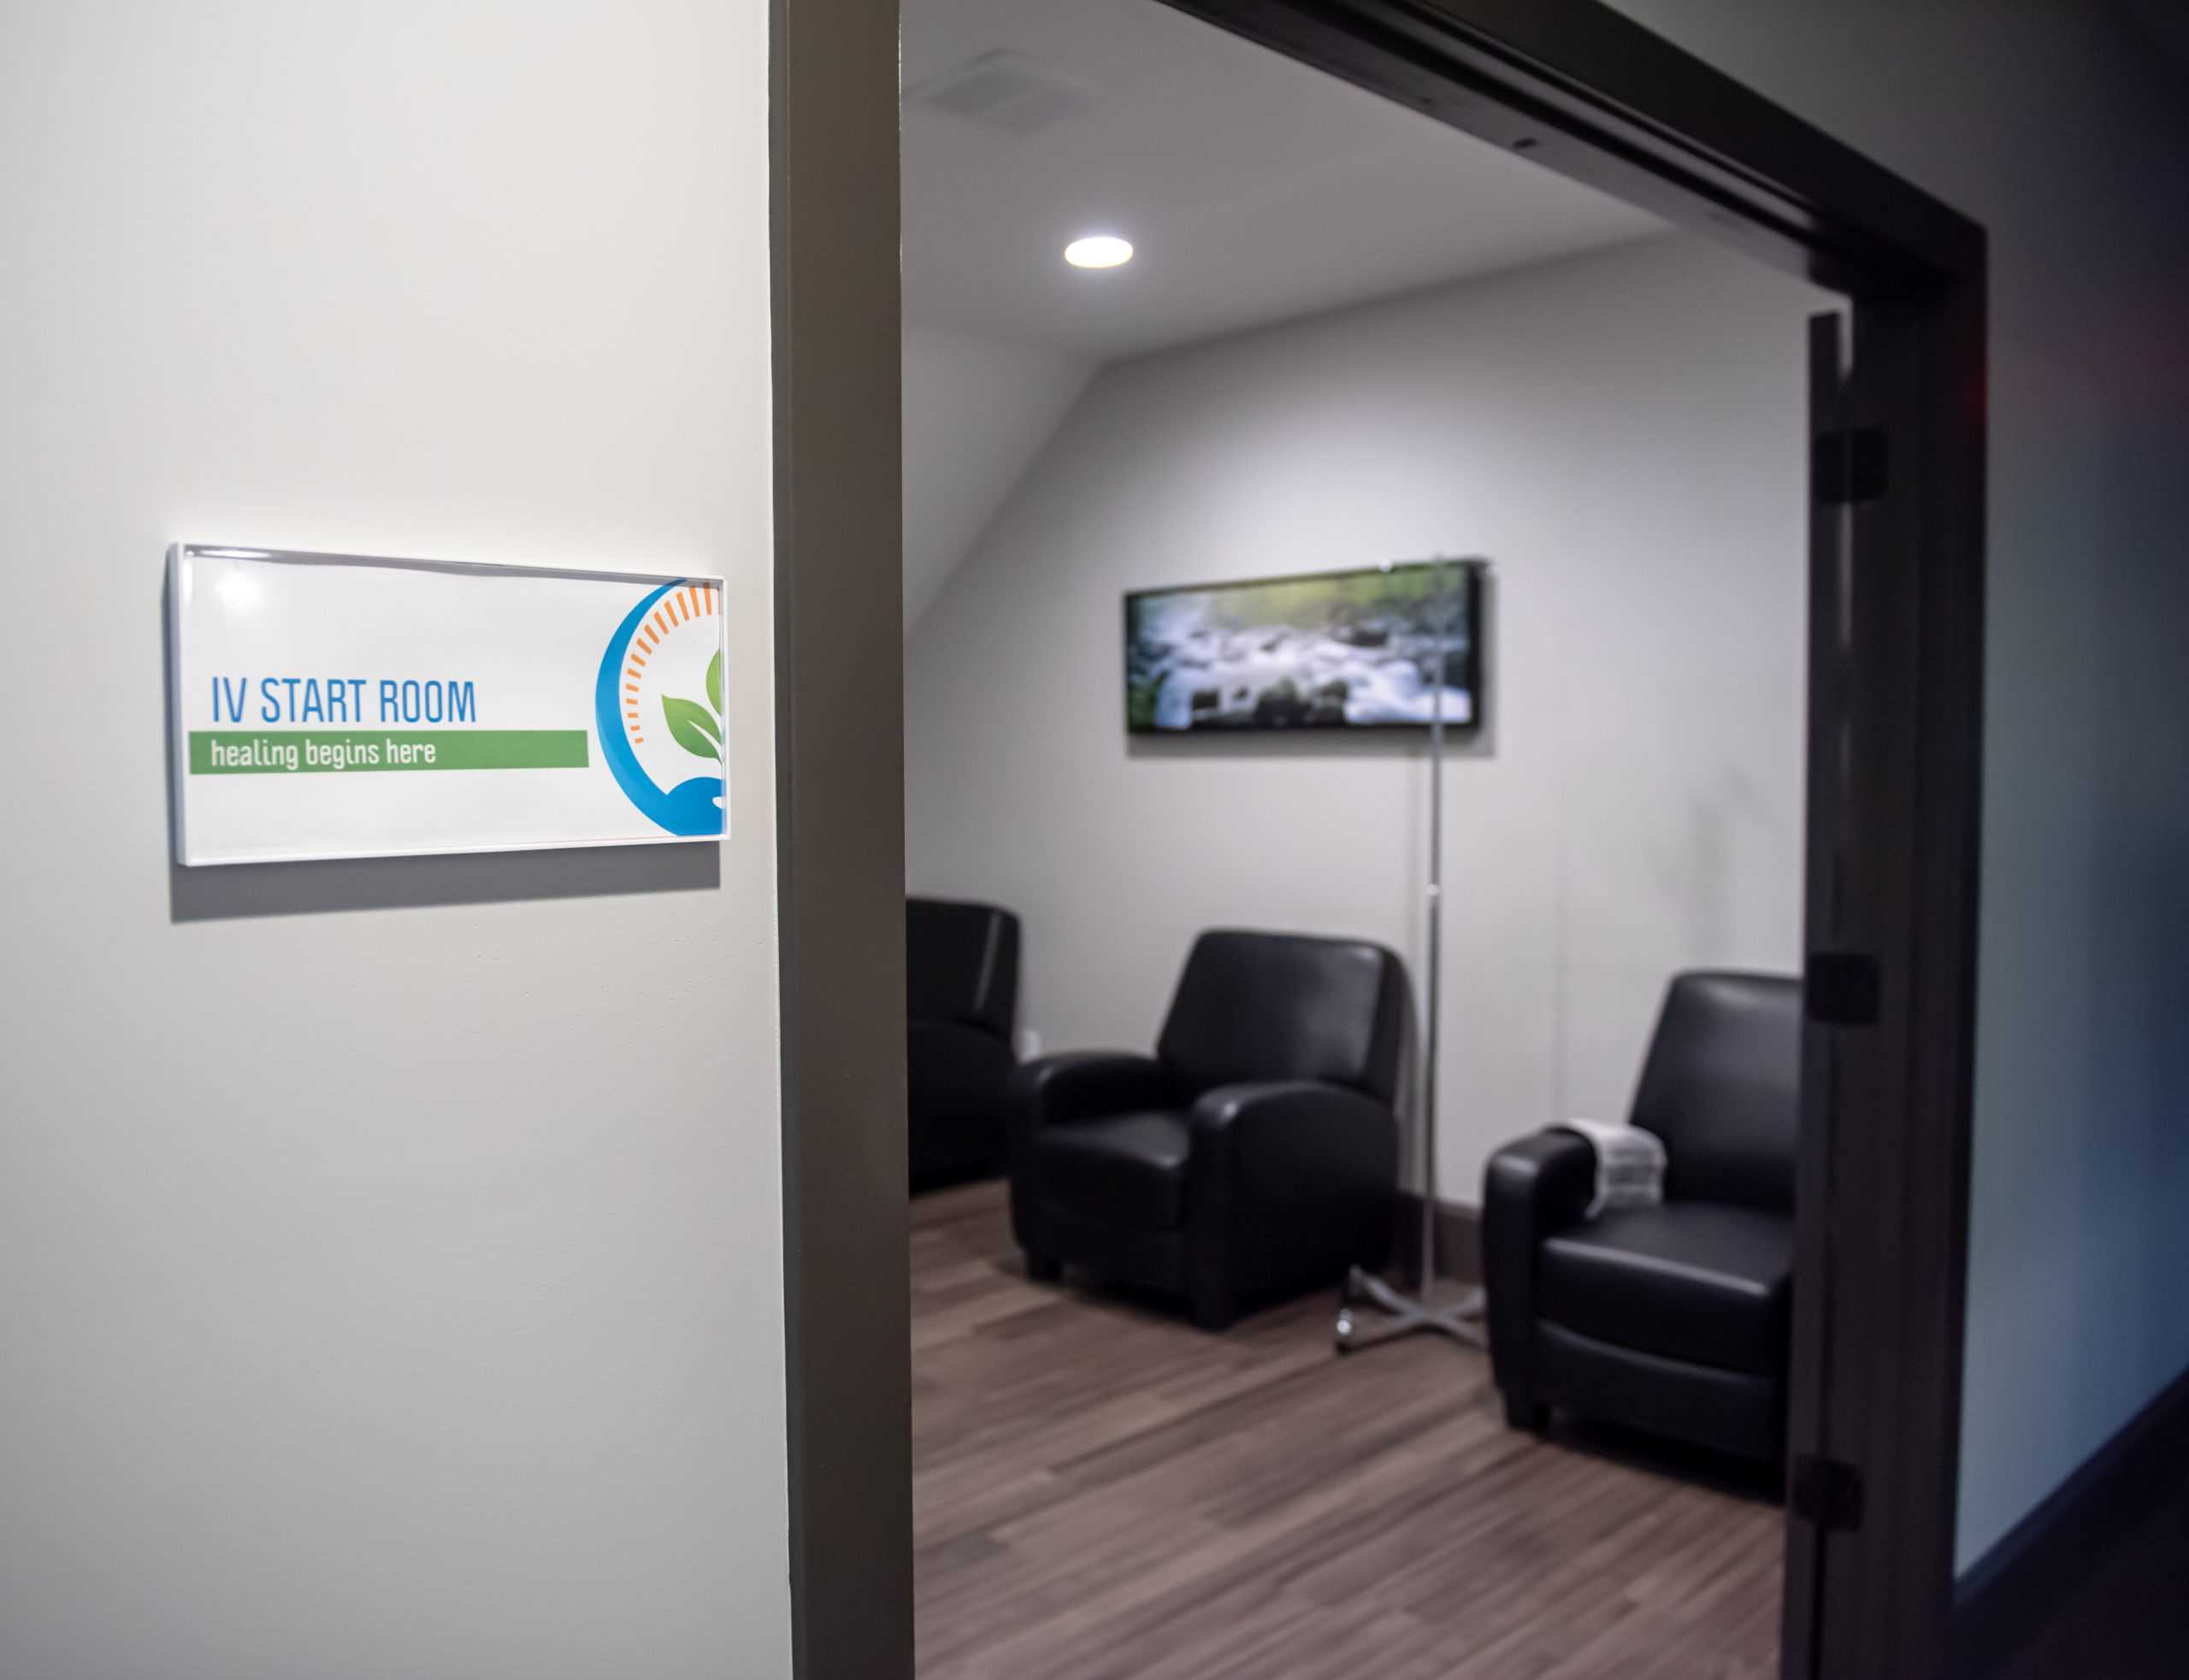 IV Start Room - Lifestyle IV Drips - IV Therapy in Springfield Missouri